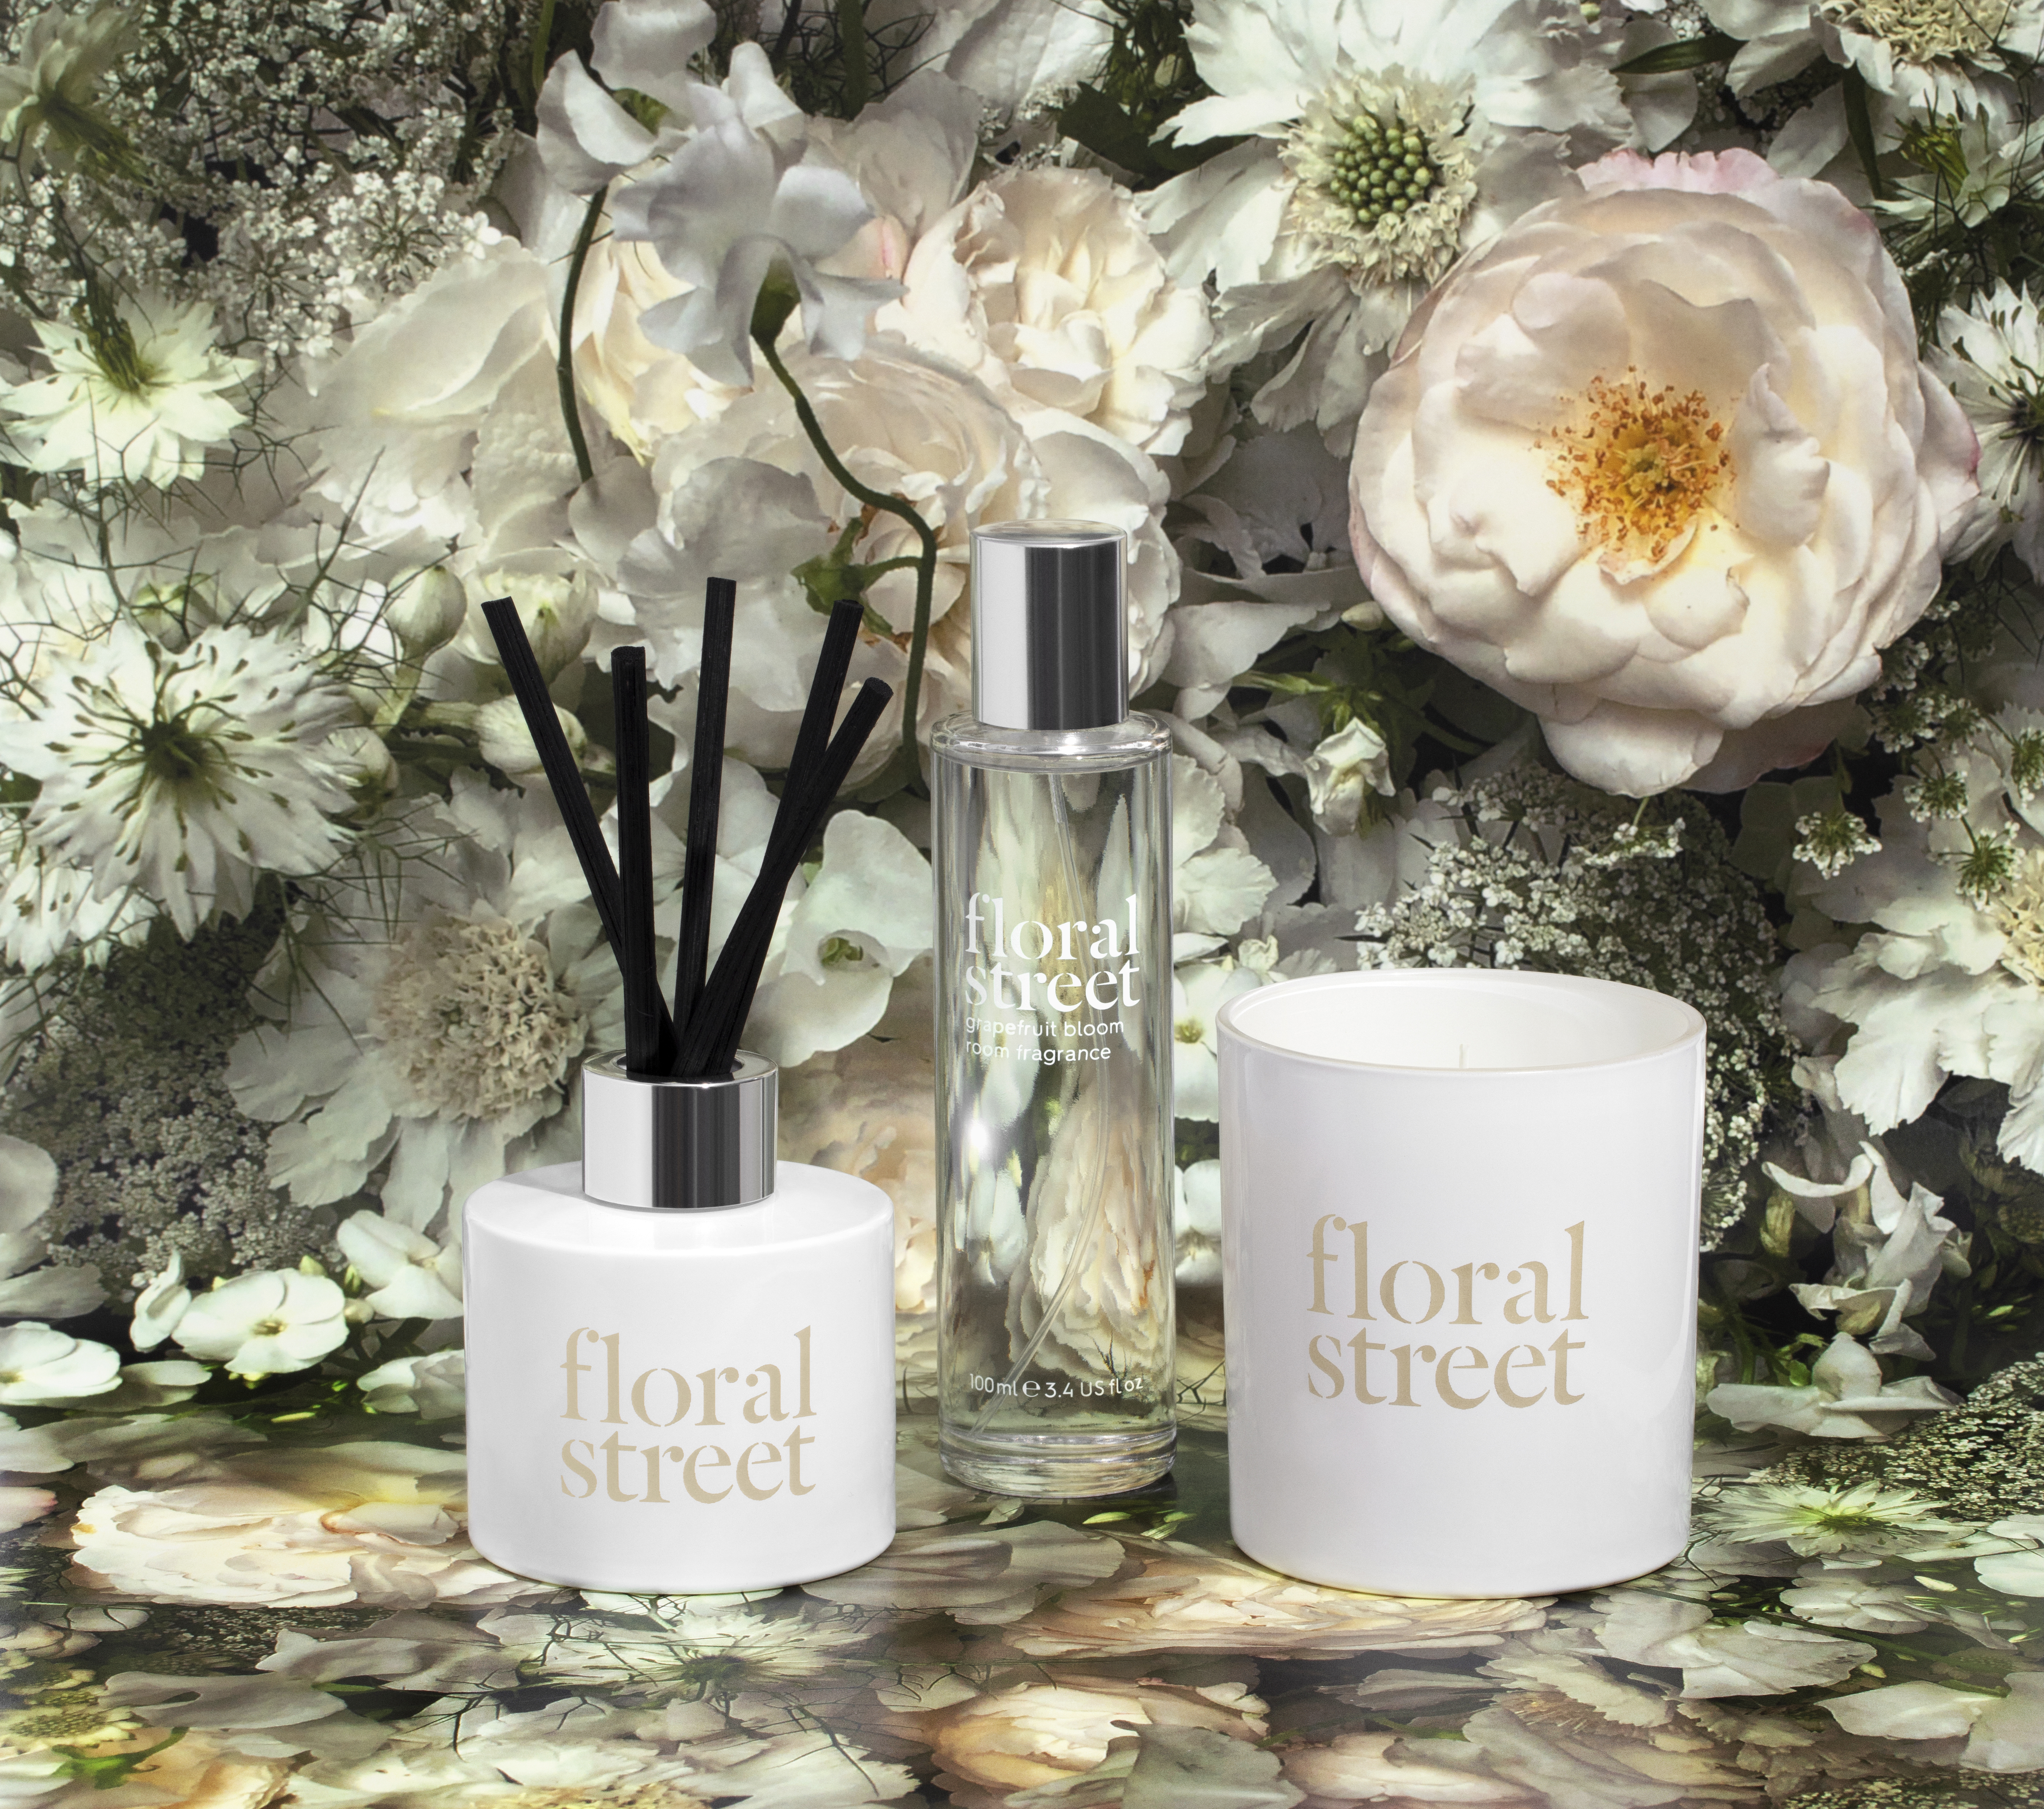 The White Florals home candle, diffuser and spray from Floral Street.